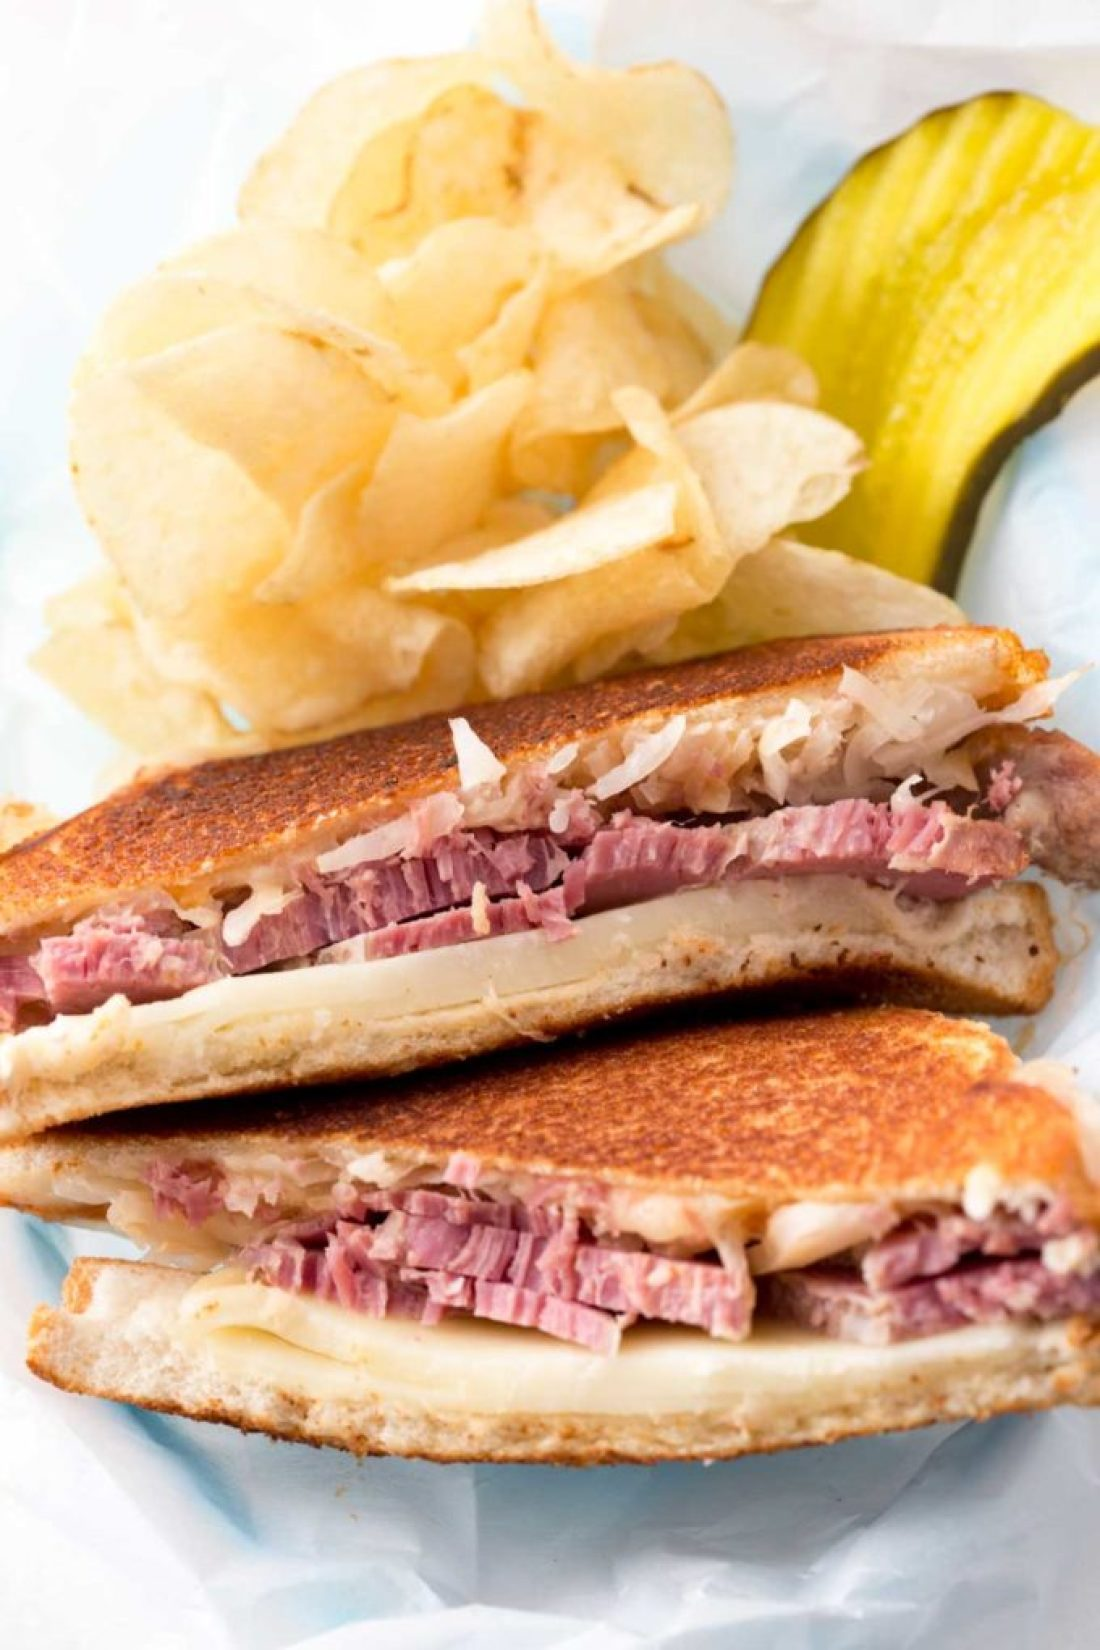 Updated reuben sandwich recipe using white bread